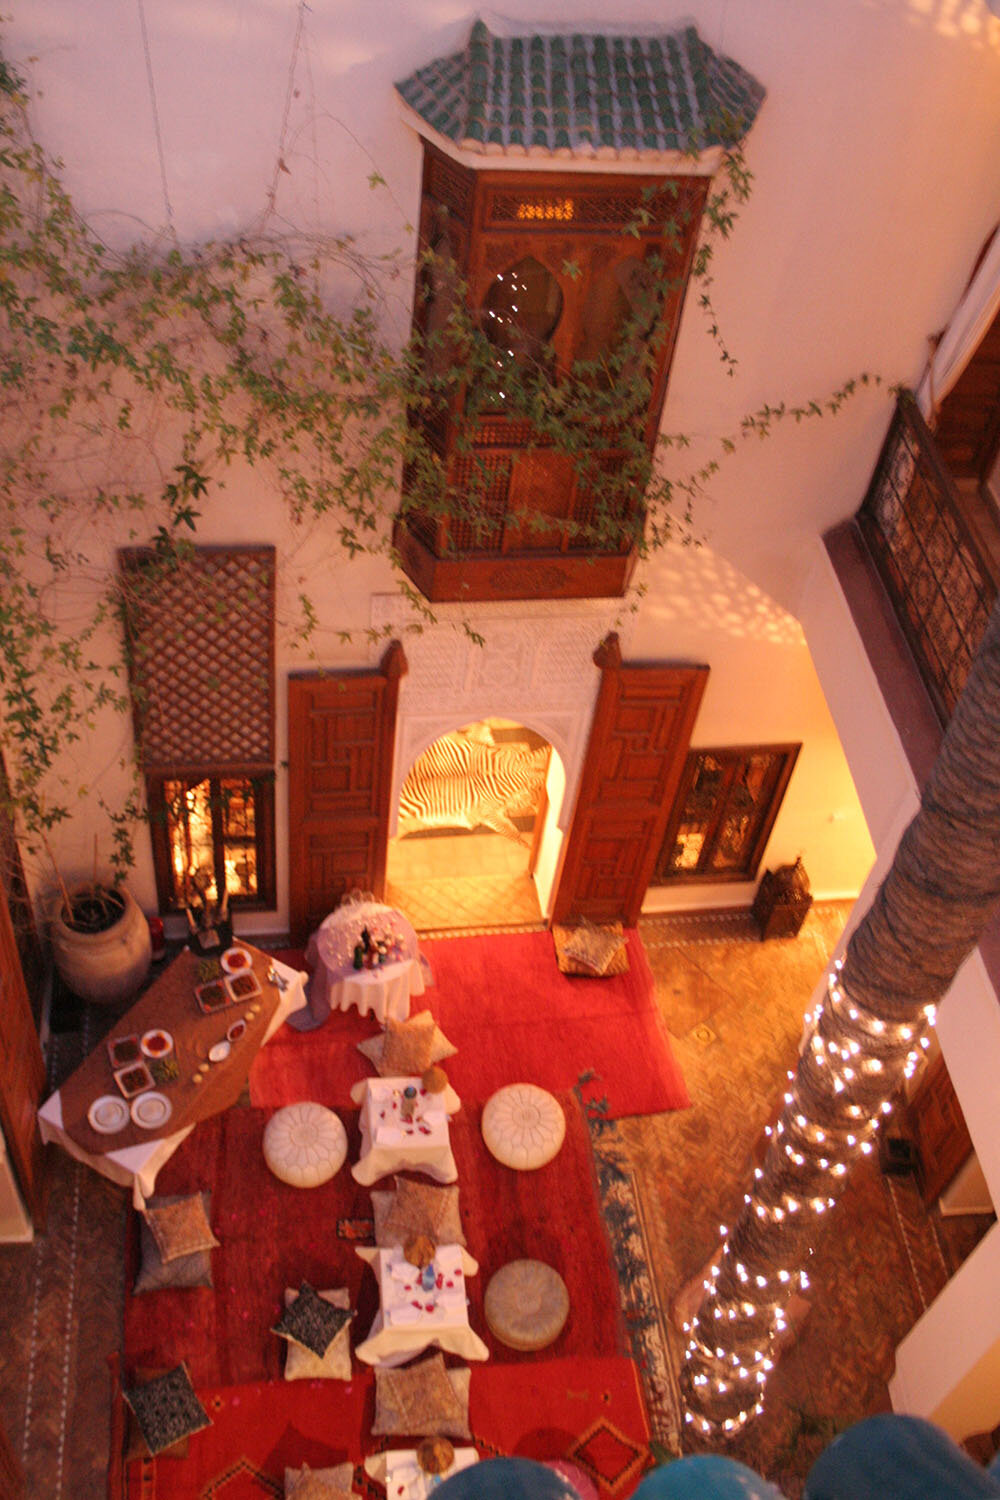 riad-zamzam-marrakech-spa-morocco-luxury-holiday-hotel-events-wedding-birthday-moroccan-special-occasion-celebrate-party-017.jpg